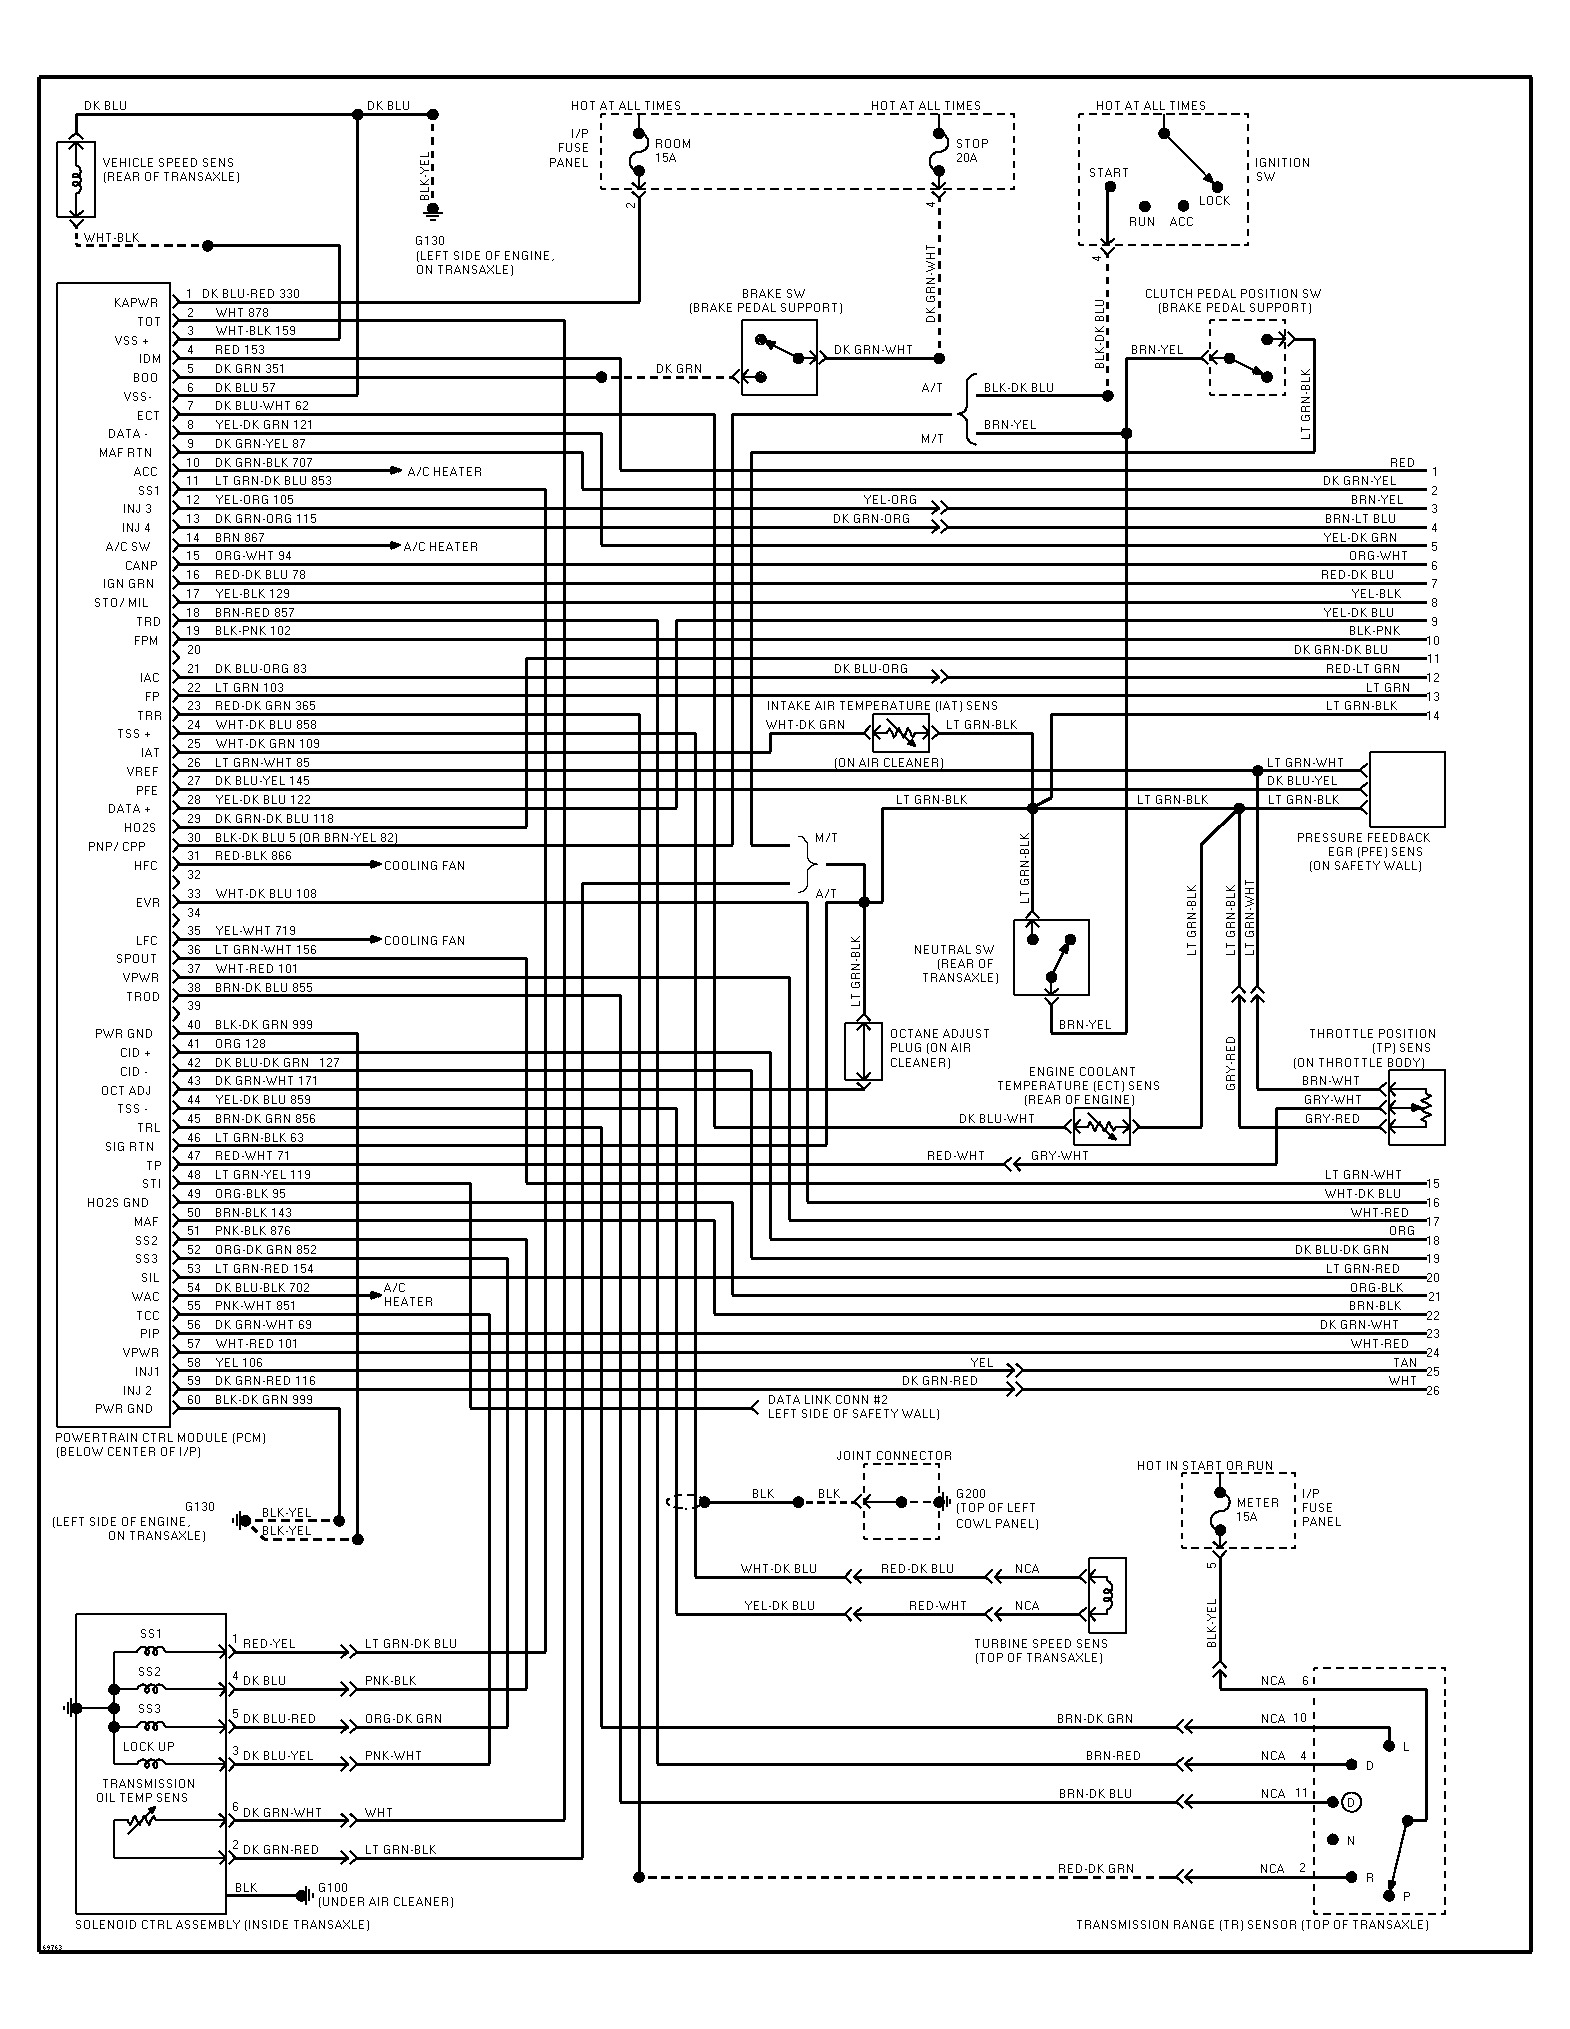 1995 Ford Escort Wiring Diagram: I Need to Find a Color Coded ...